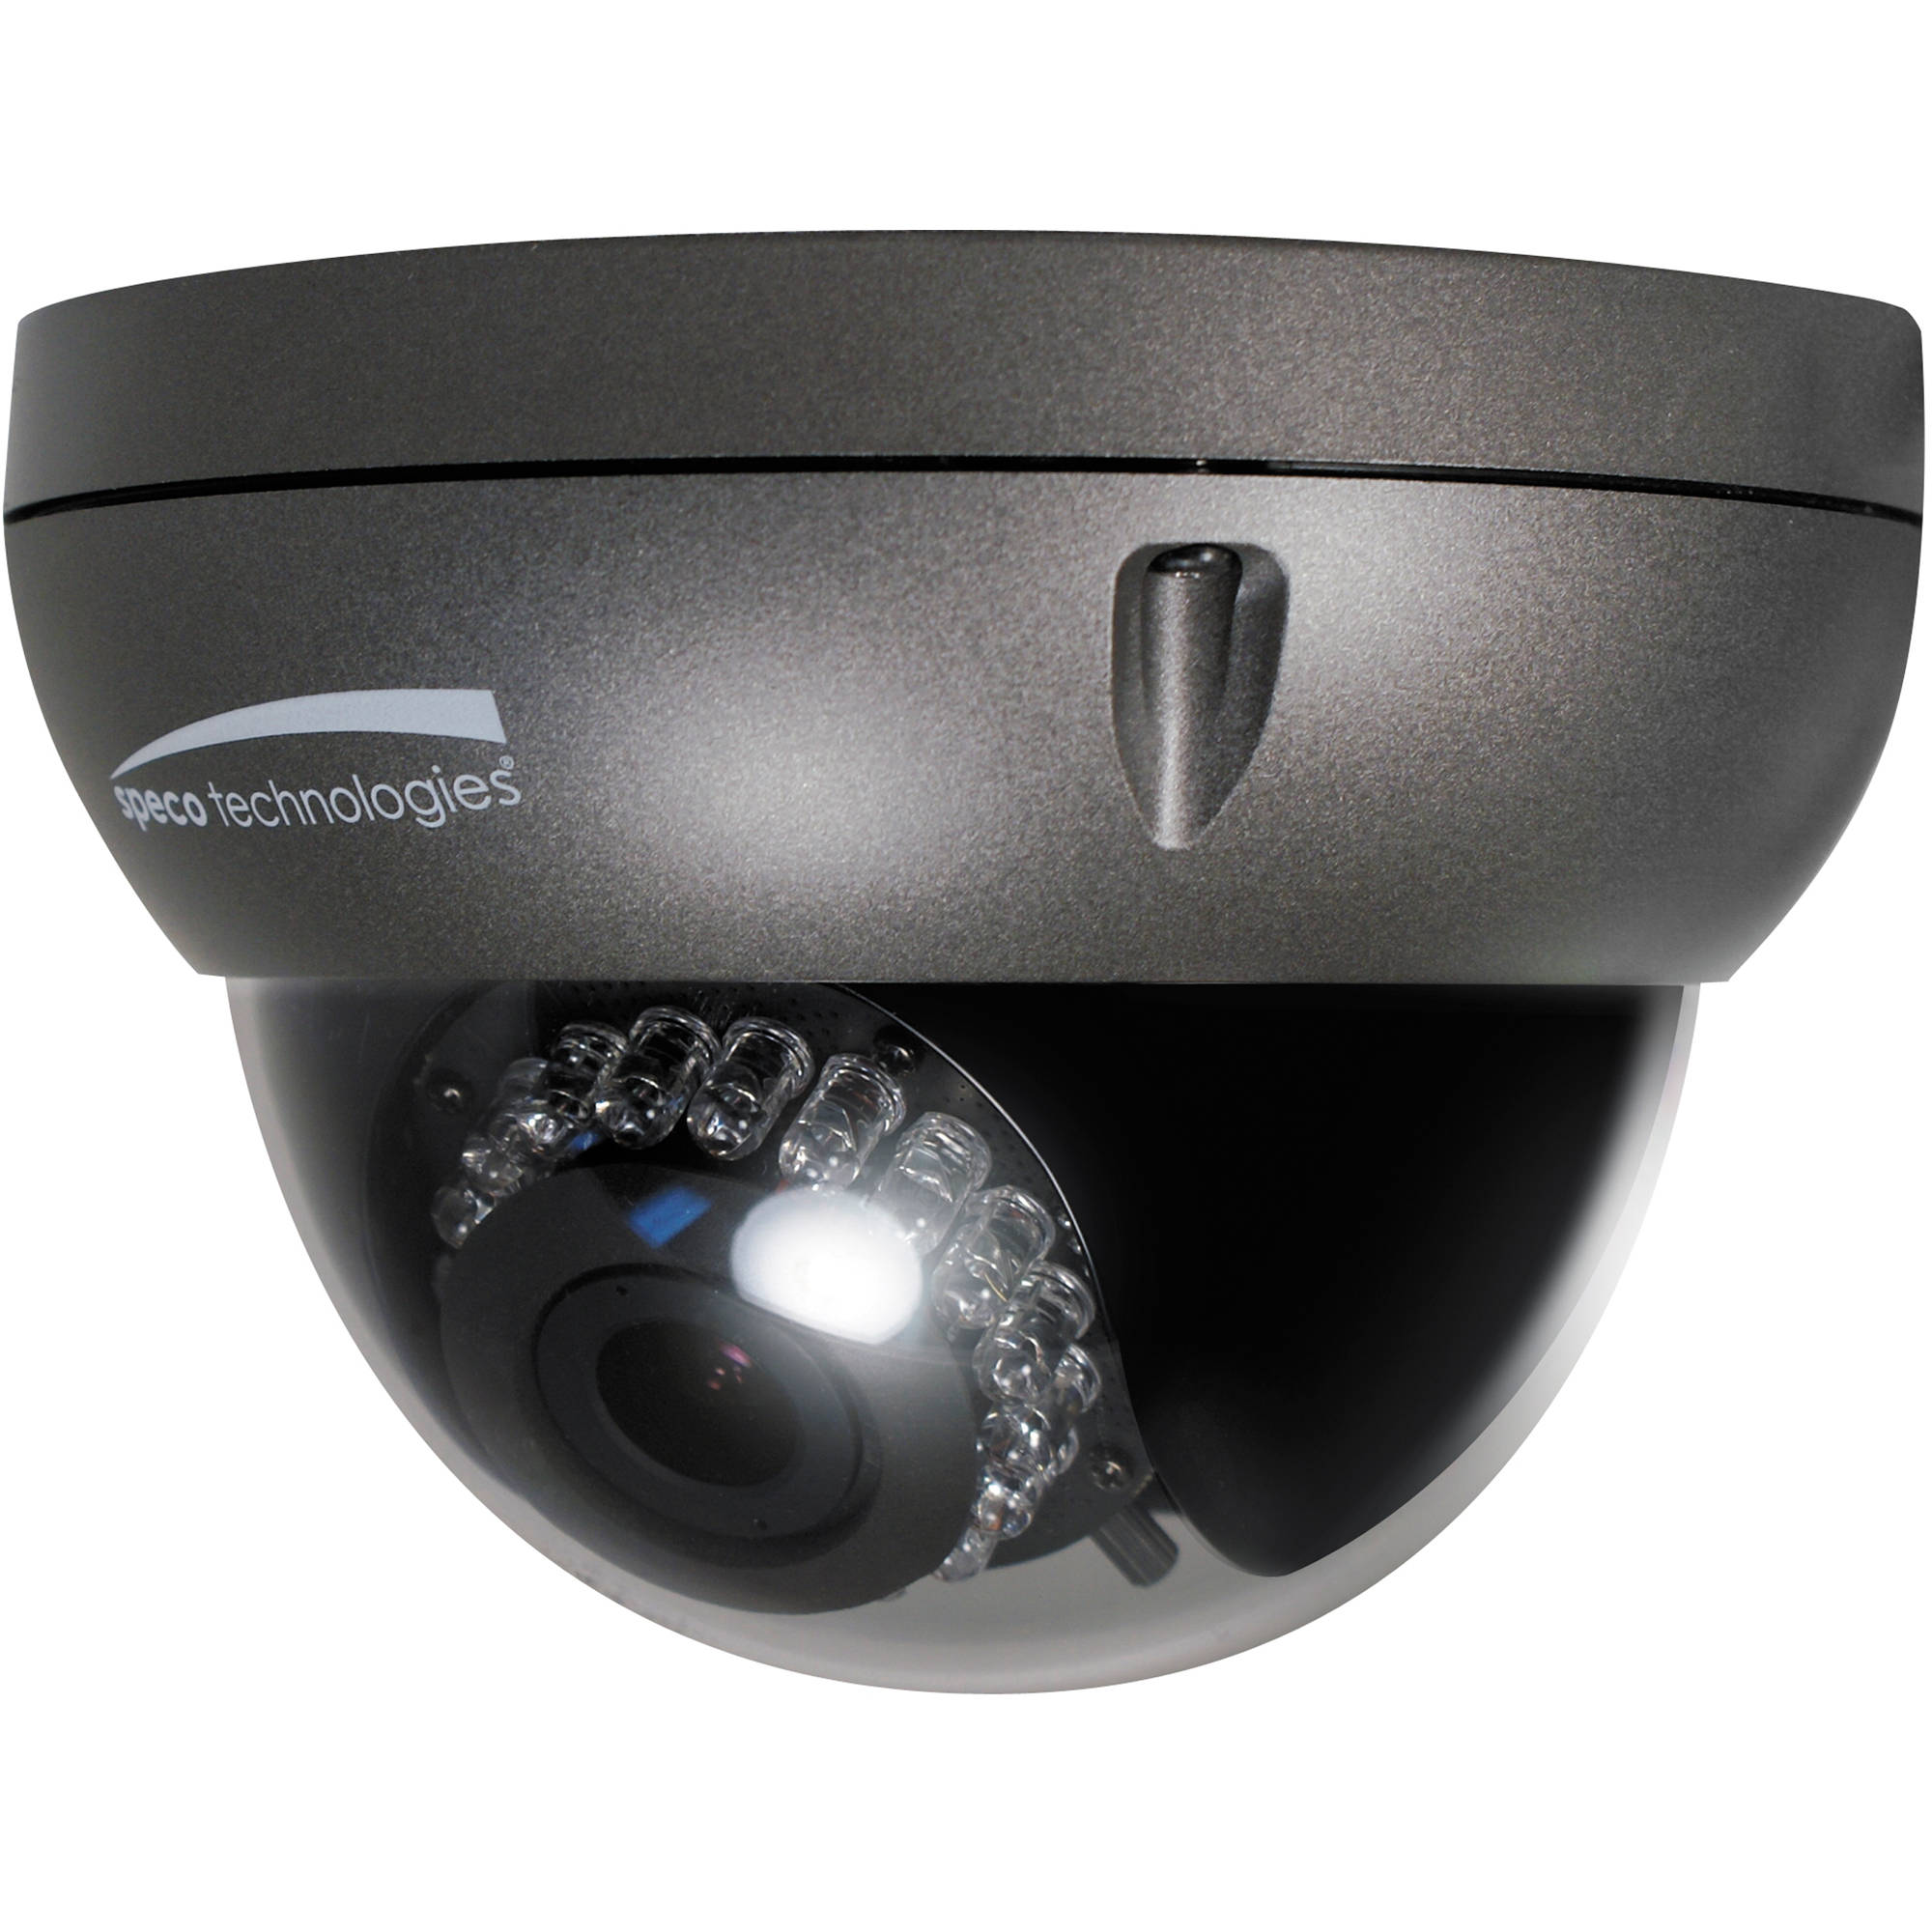 speco technologies o2d4 2mp outdoor network dome camera. Black Bedroom Furniture Sets. Home Design Ideas